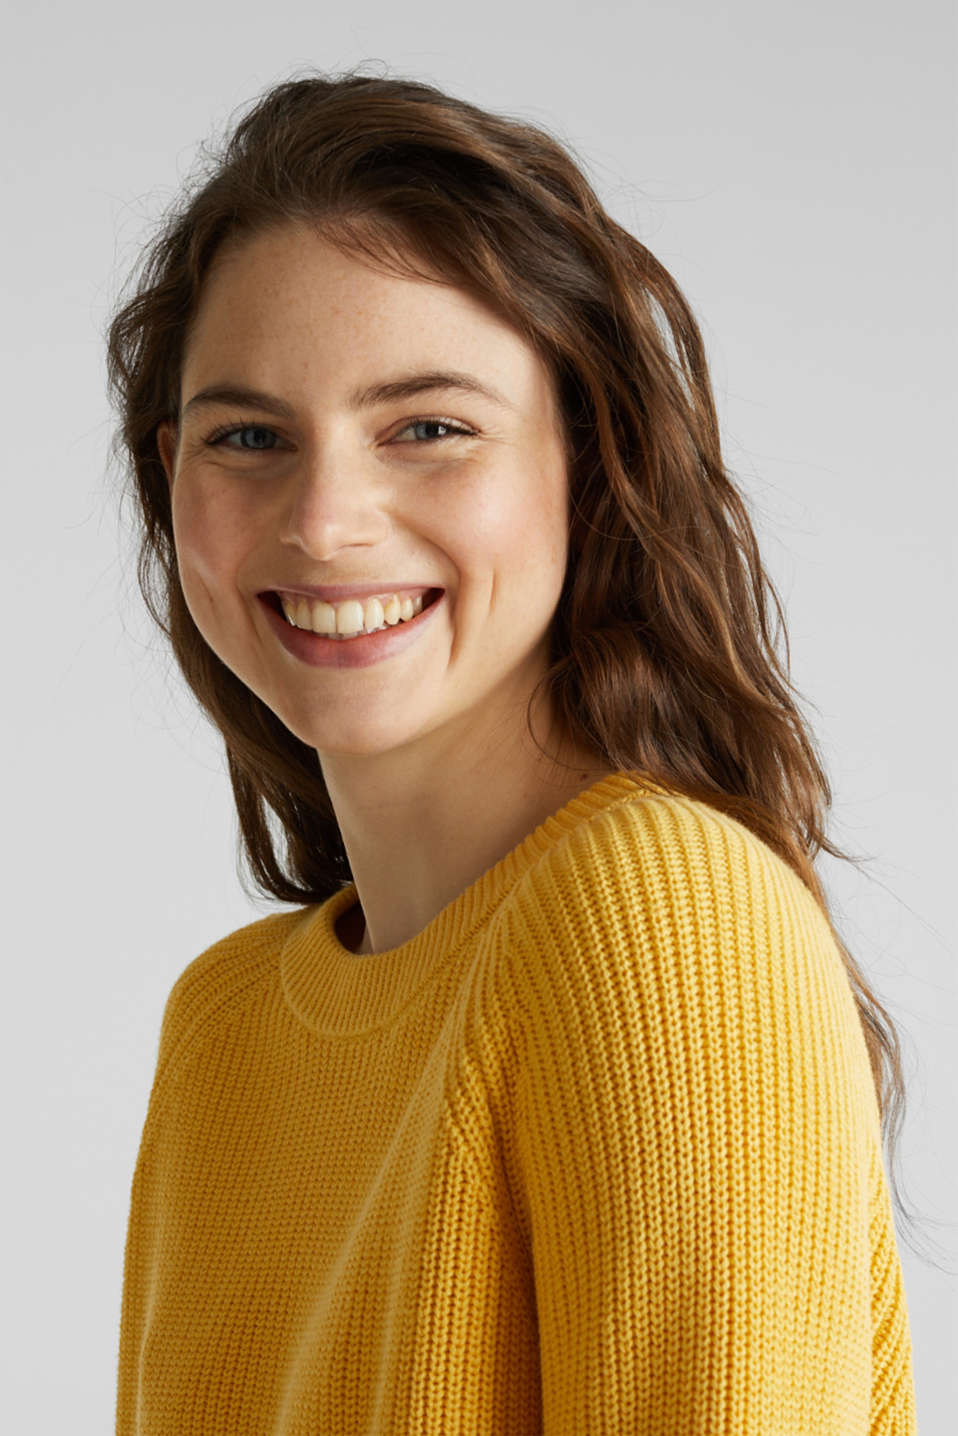 Jumper with a high-low hem, 100% cotton, YELLOW, detail image number 6